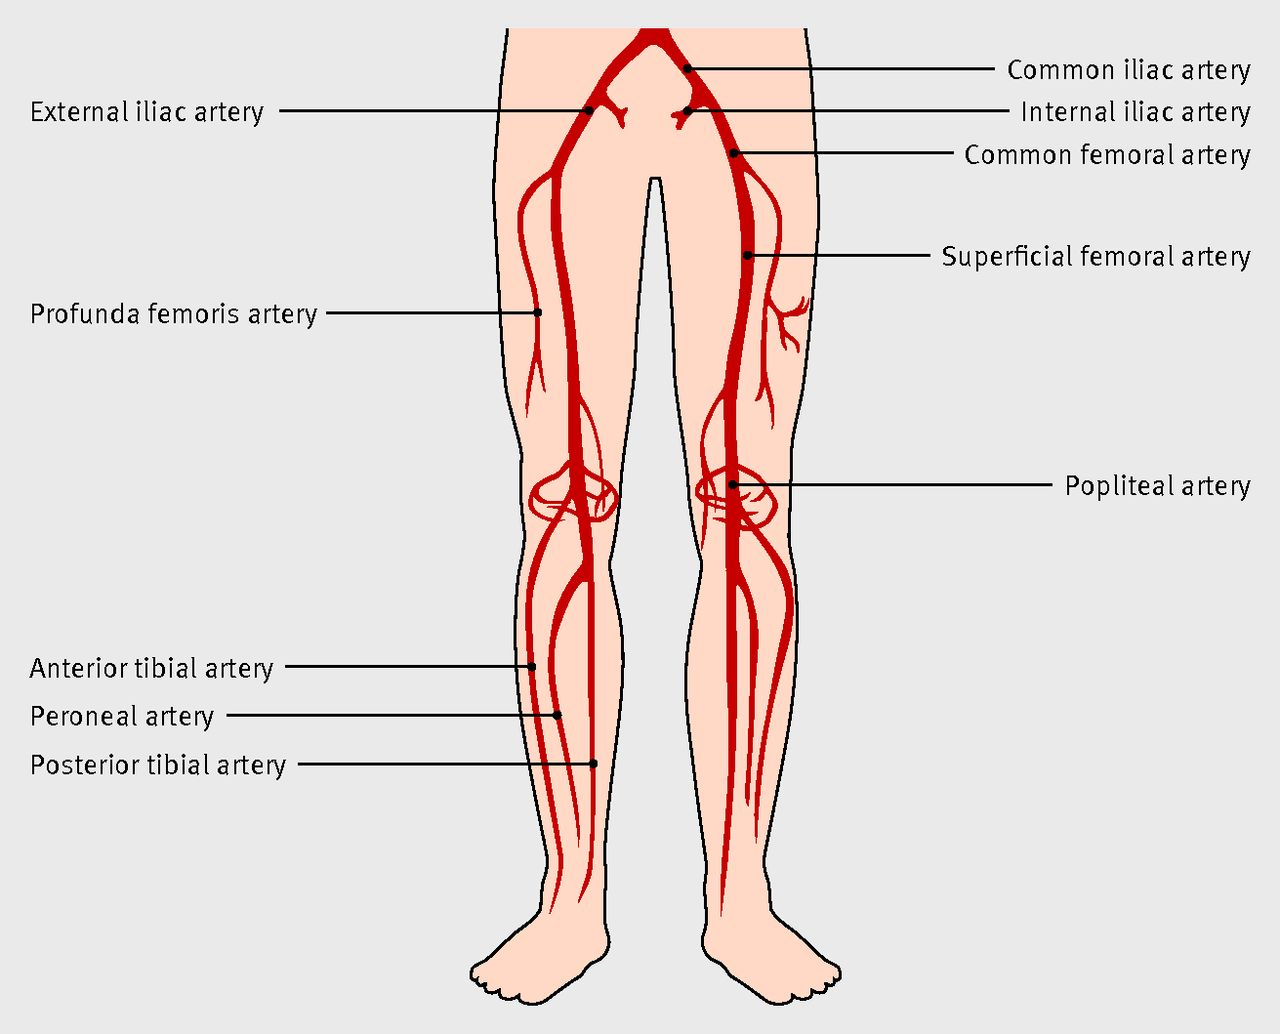 Diagnosis and management of peripheral arterial disease | The BMJ